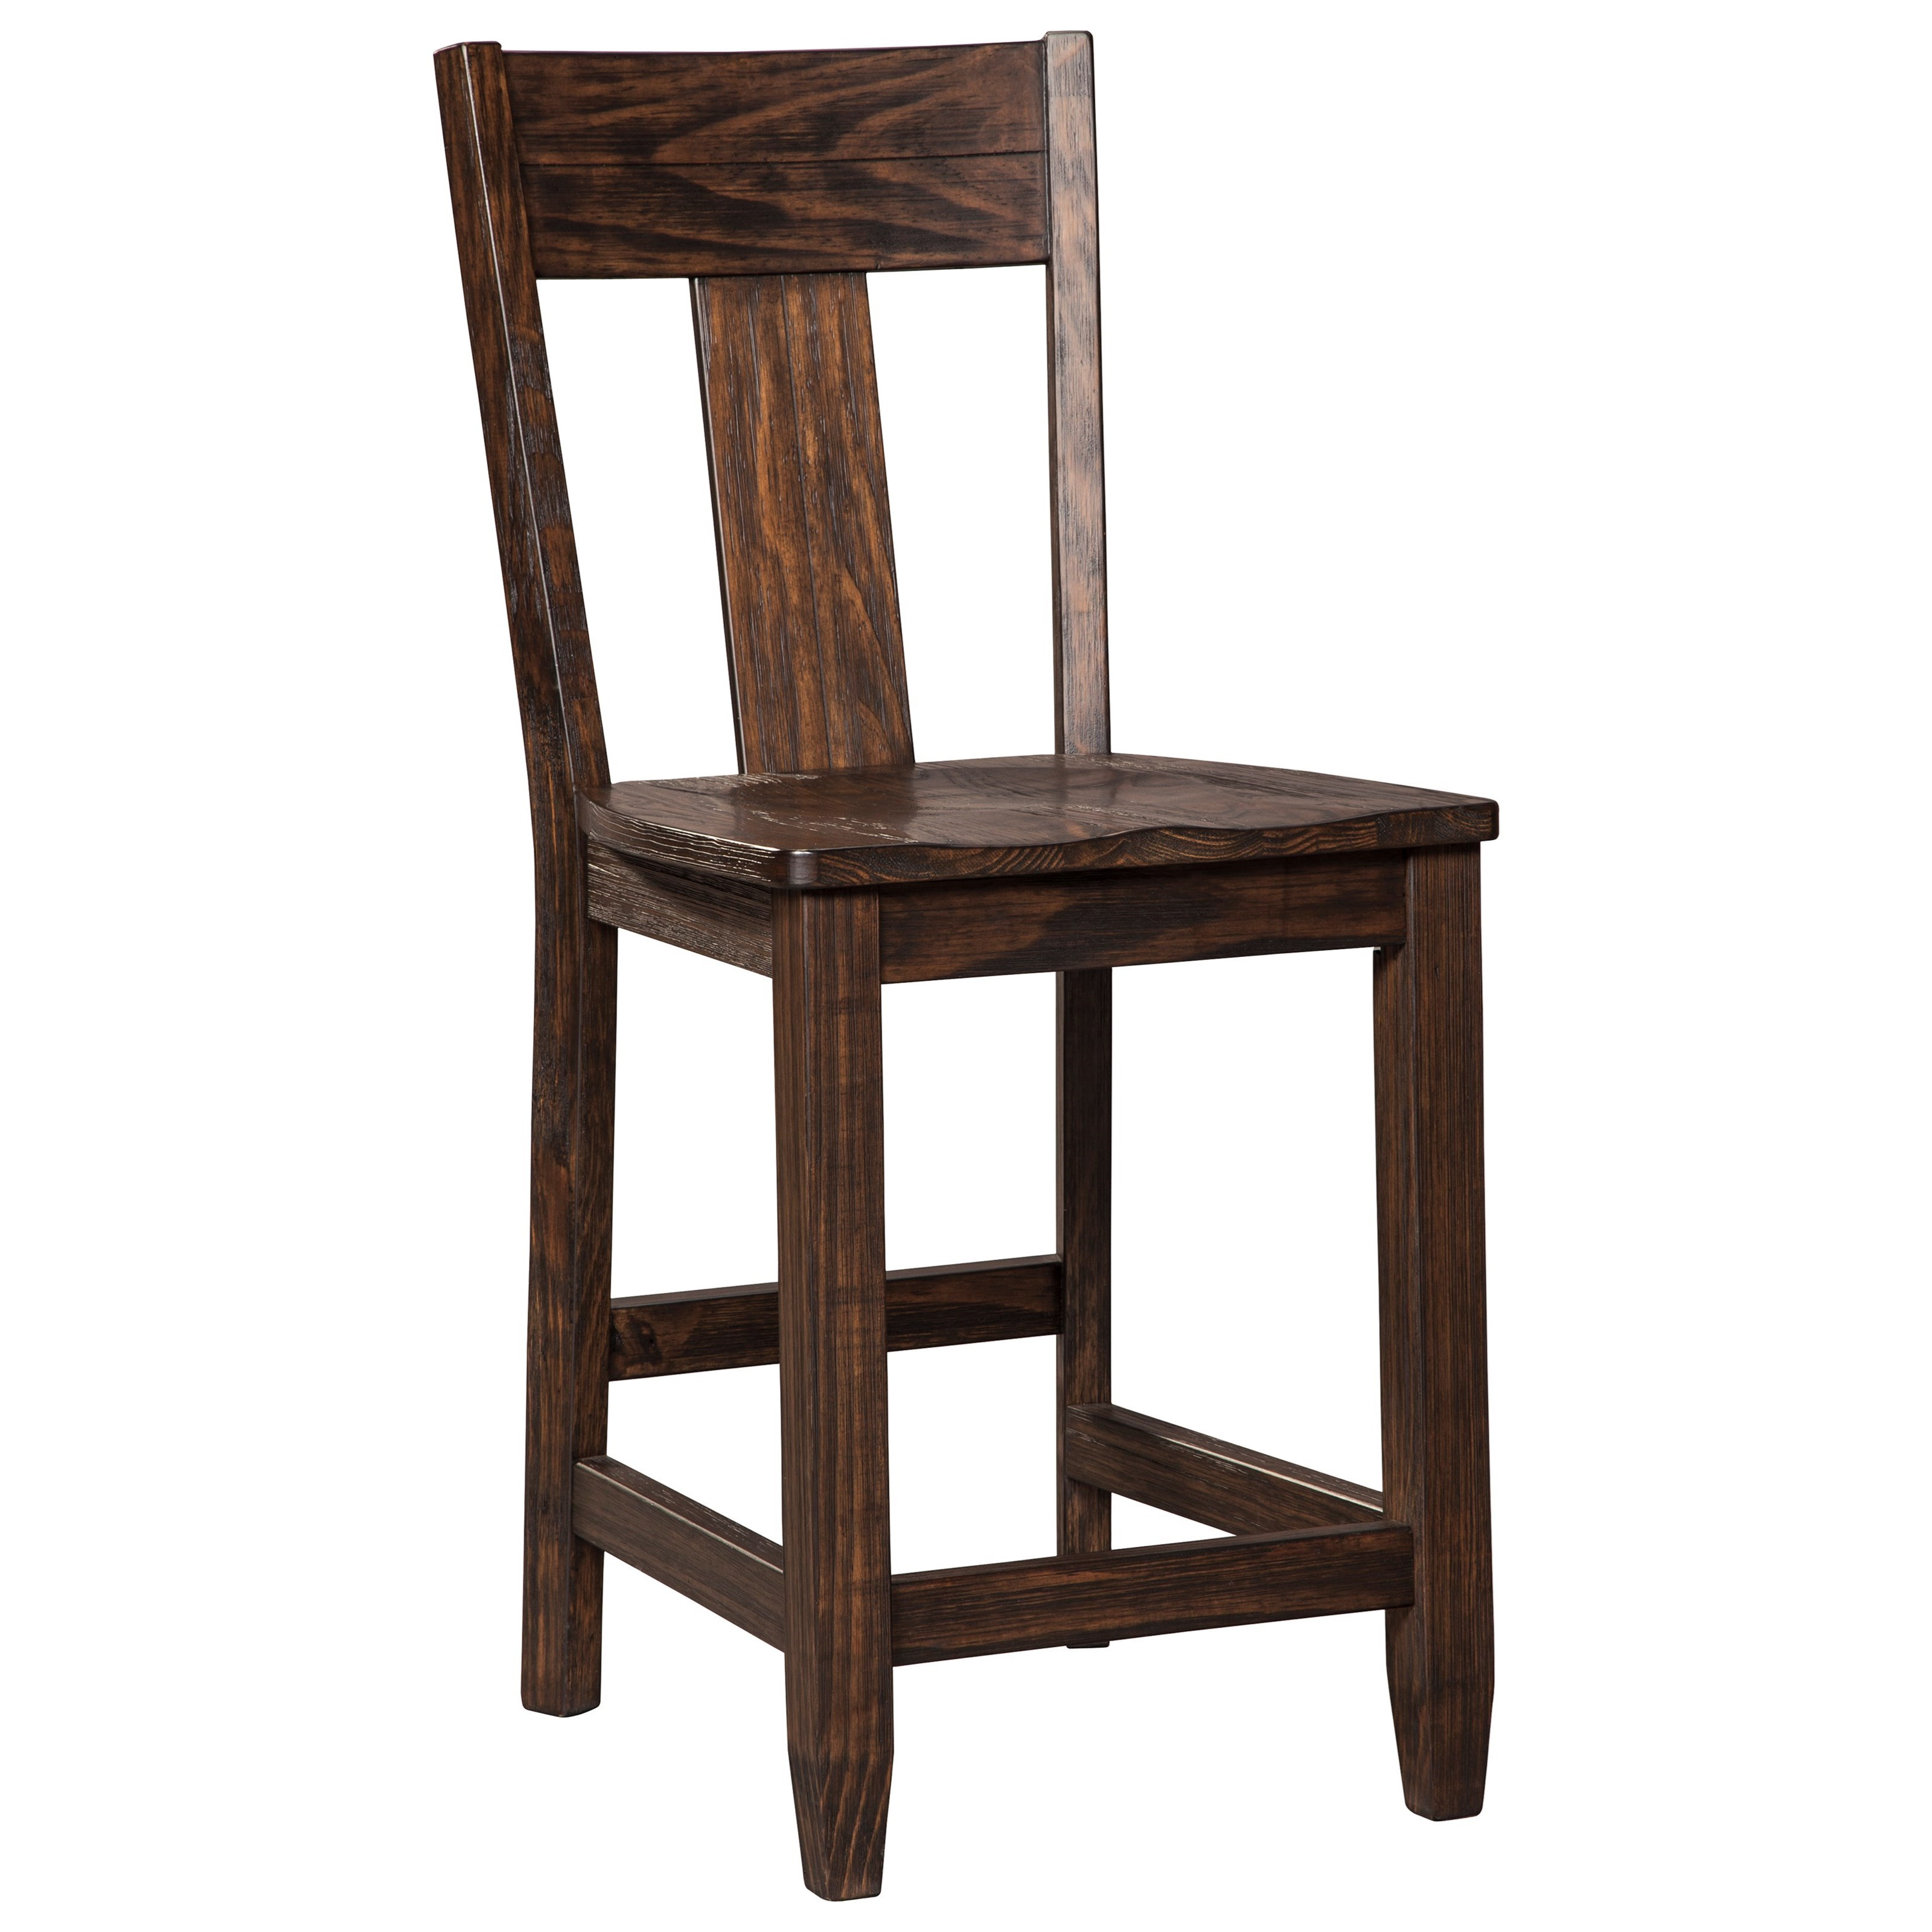 Signature Design by Ashley Trudell Barstool - Item Number: D658-124